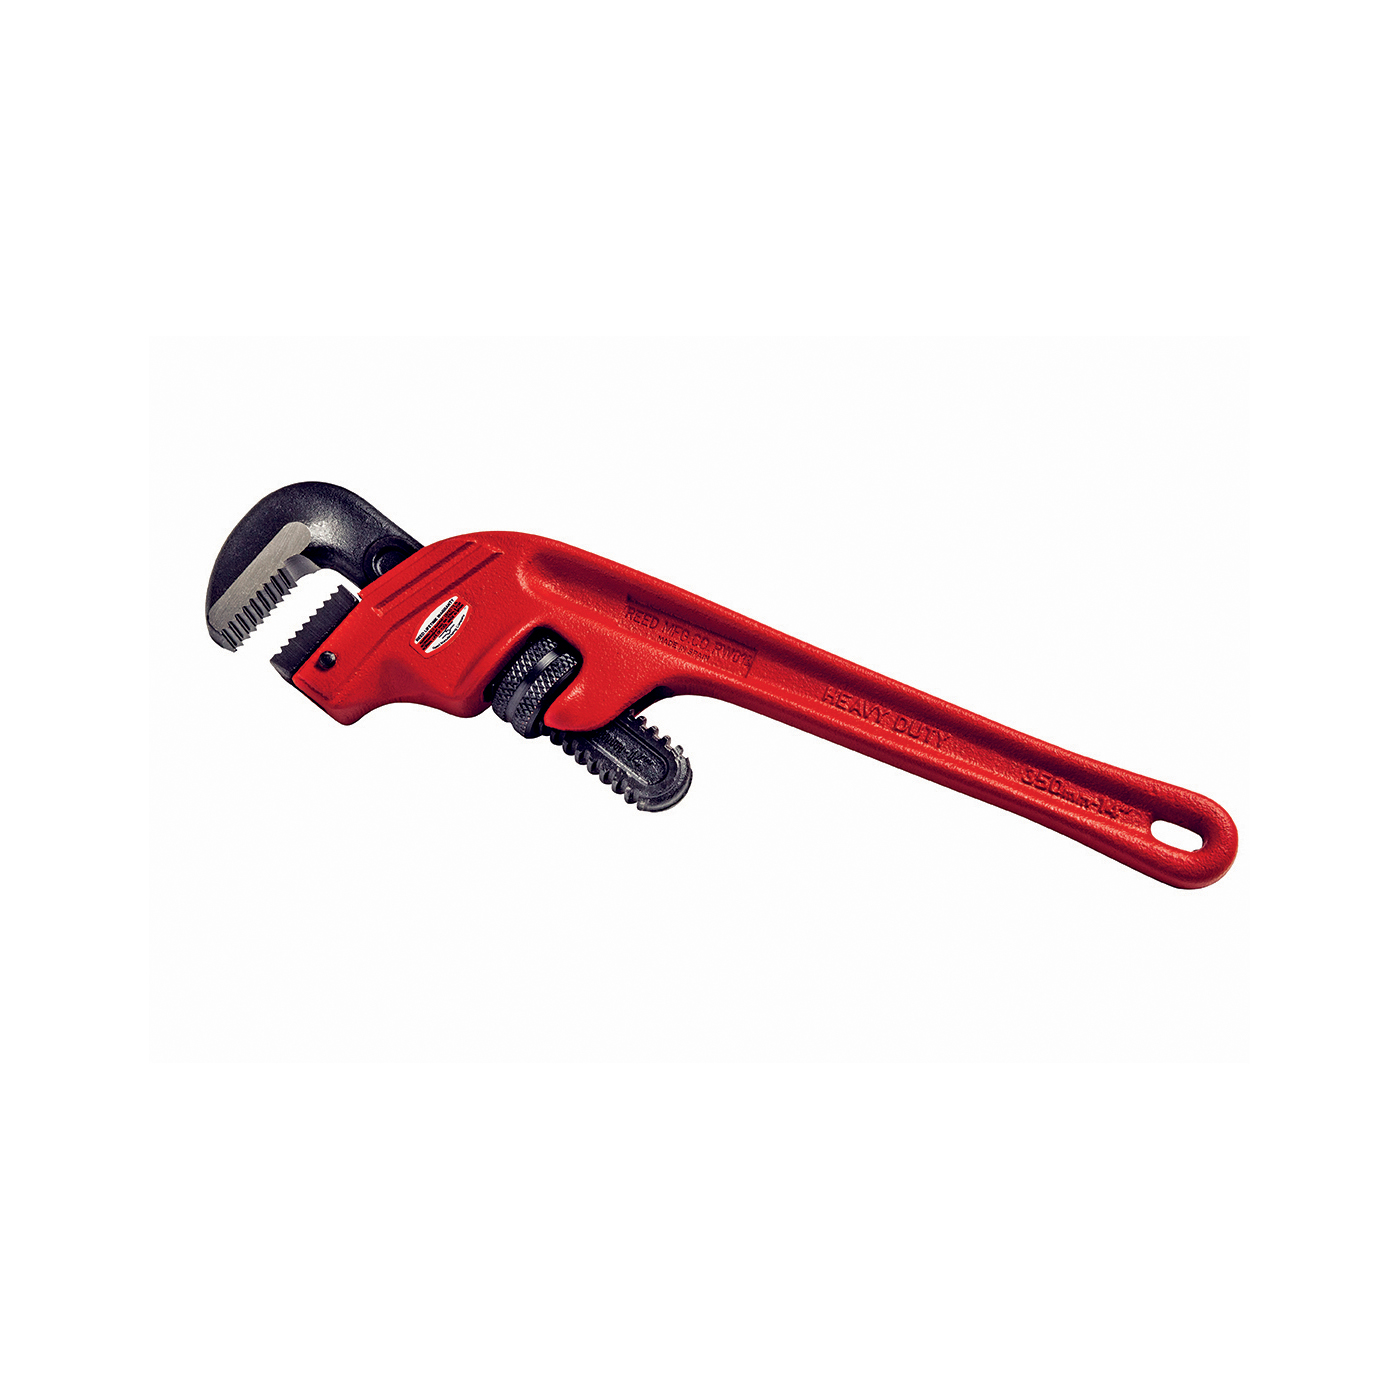 Reed 02230 Heavy Duty Offset Pipe Wrench, 1/4 to 2 in Pipe, 14 in OAL, Ductile Iron Handle